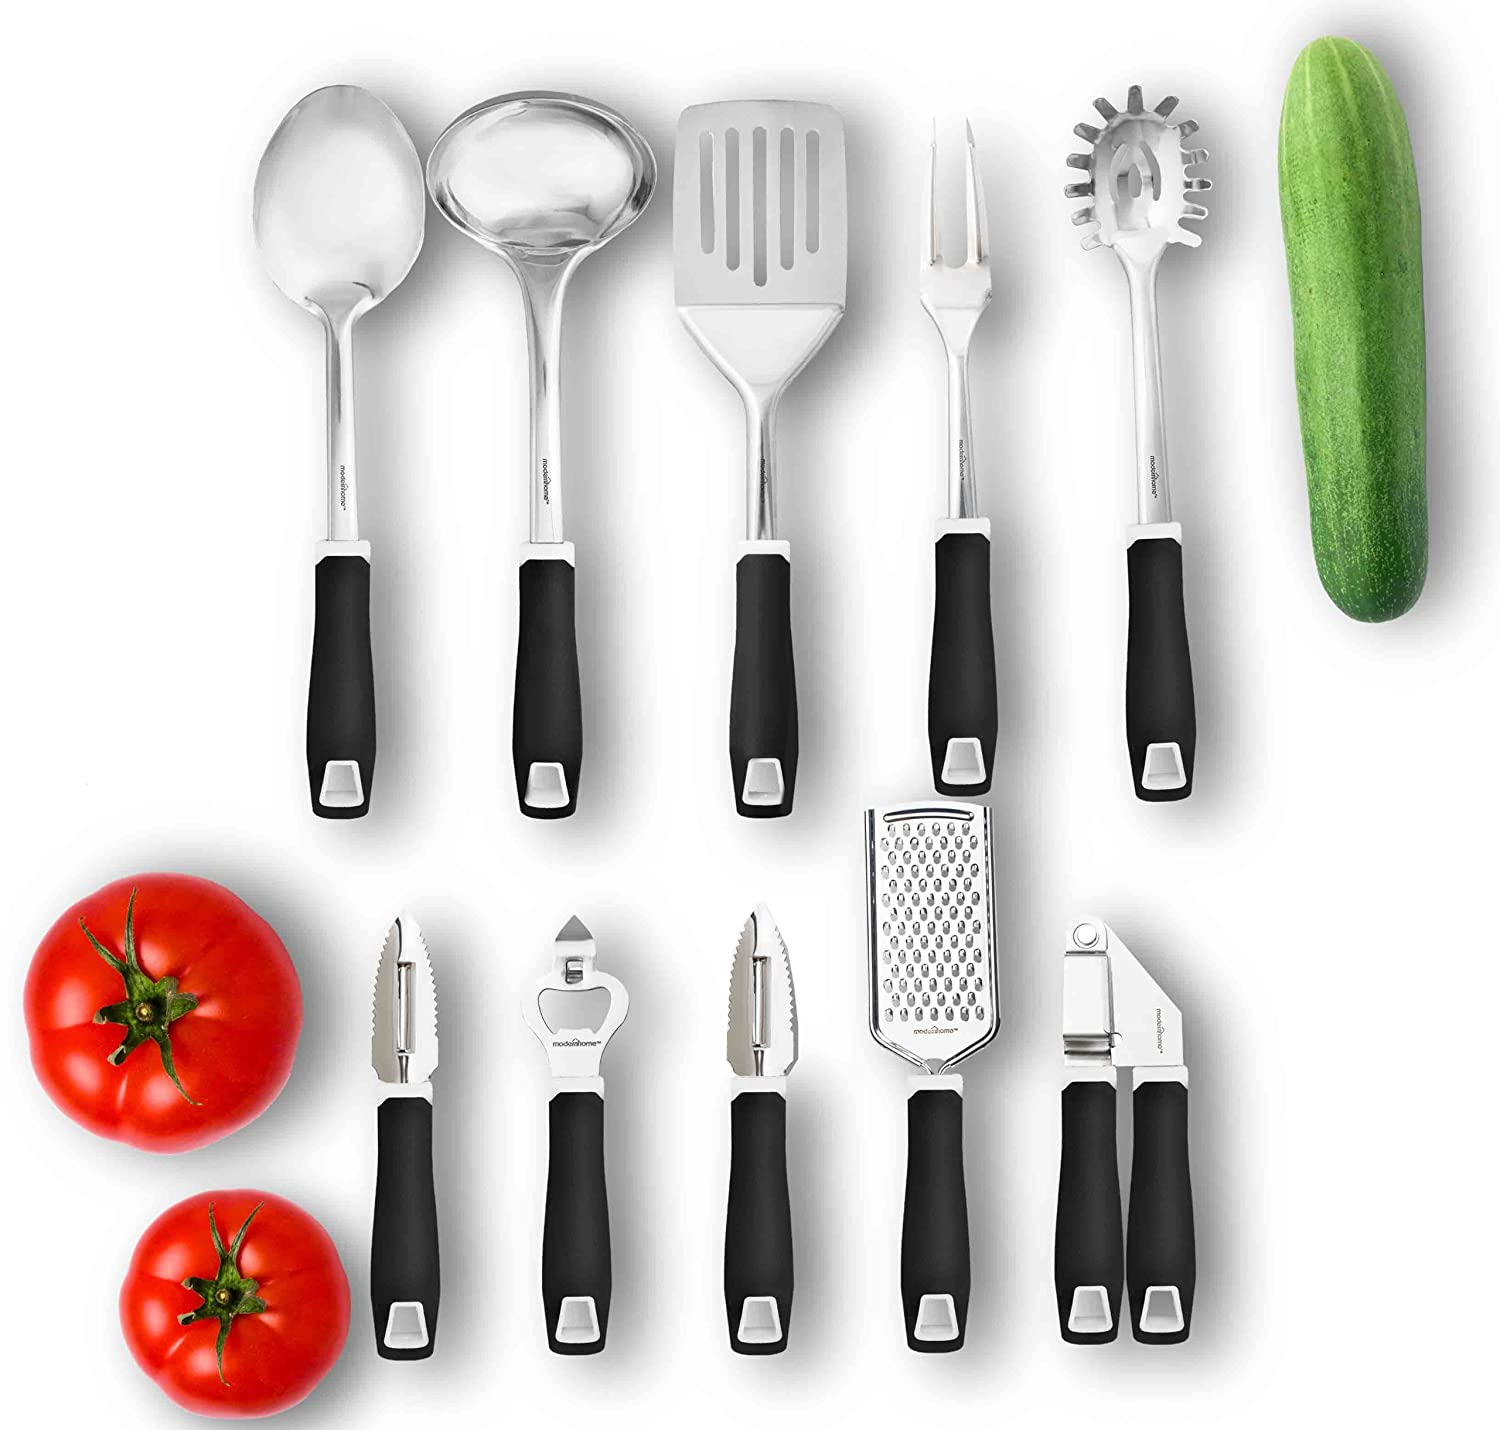 amazoncom modernhome 10 piece kitchen tools gadget set kitchen dining